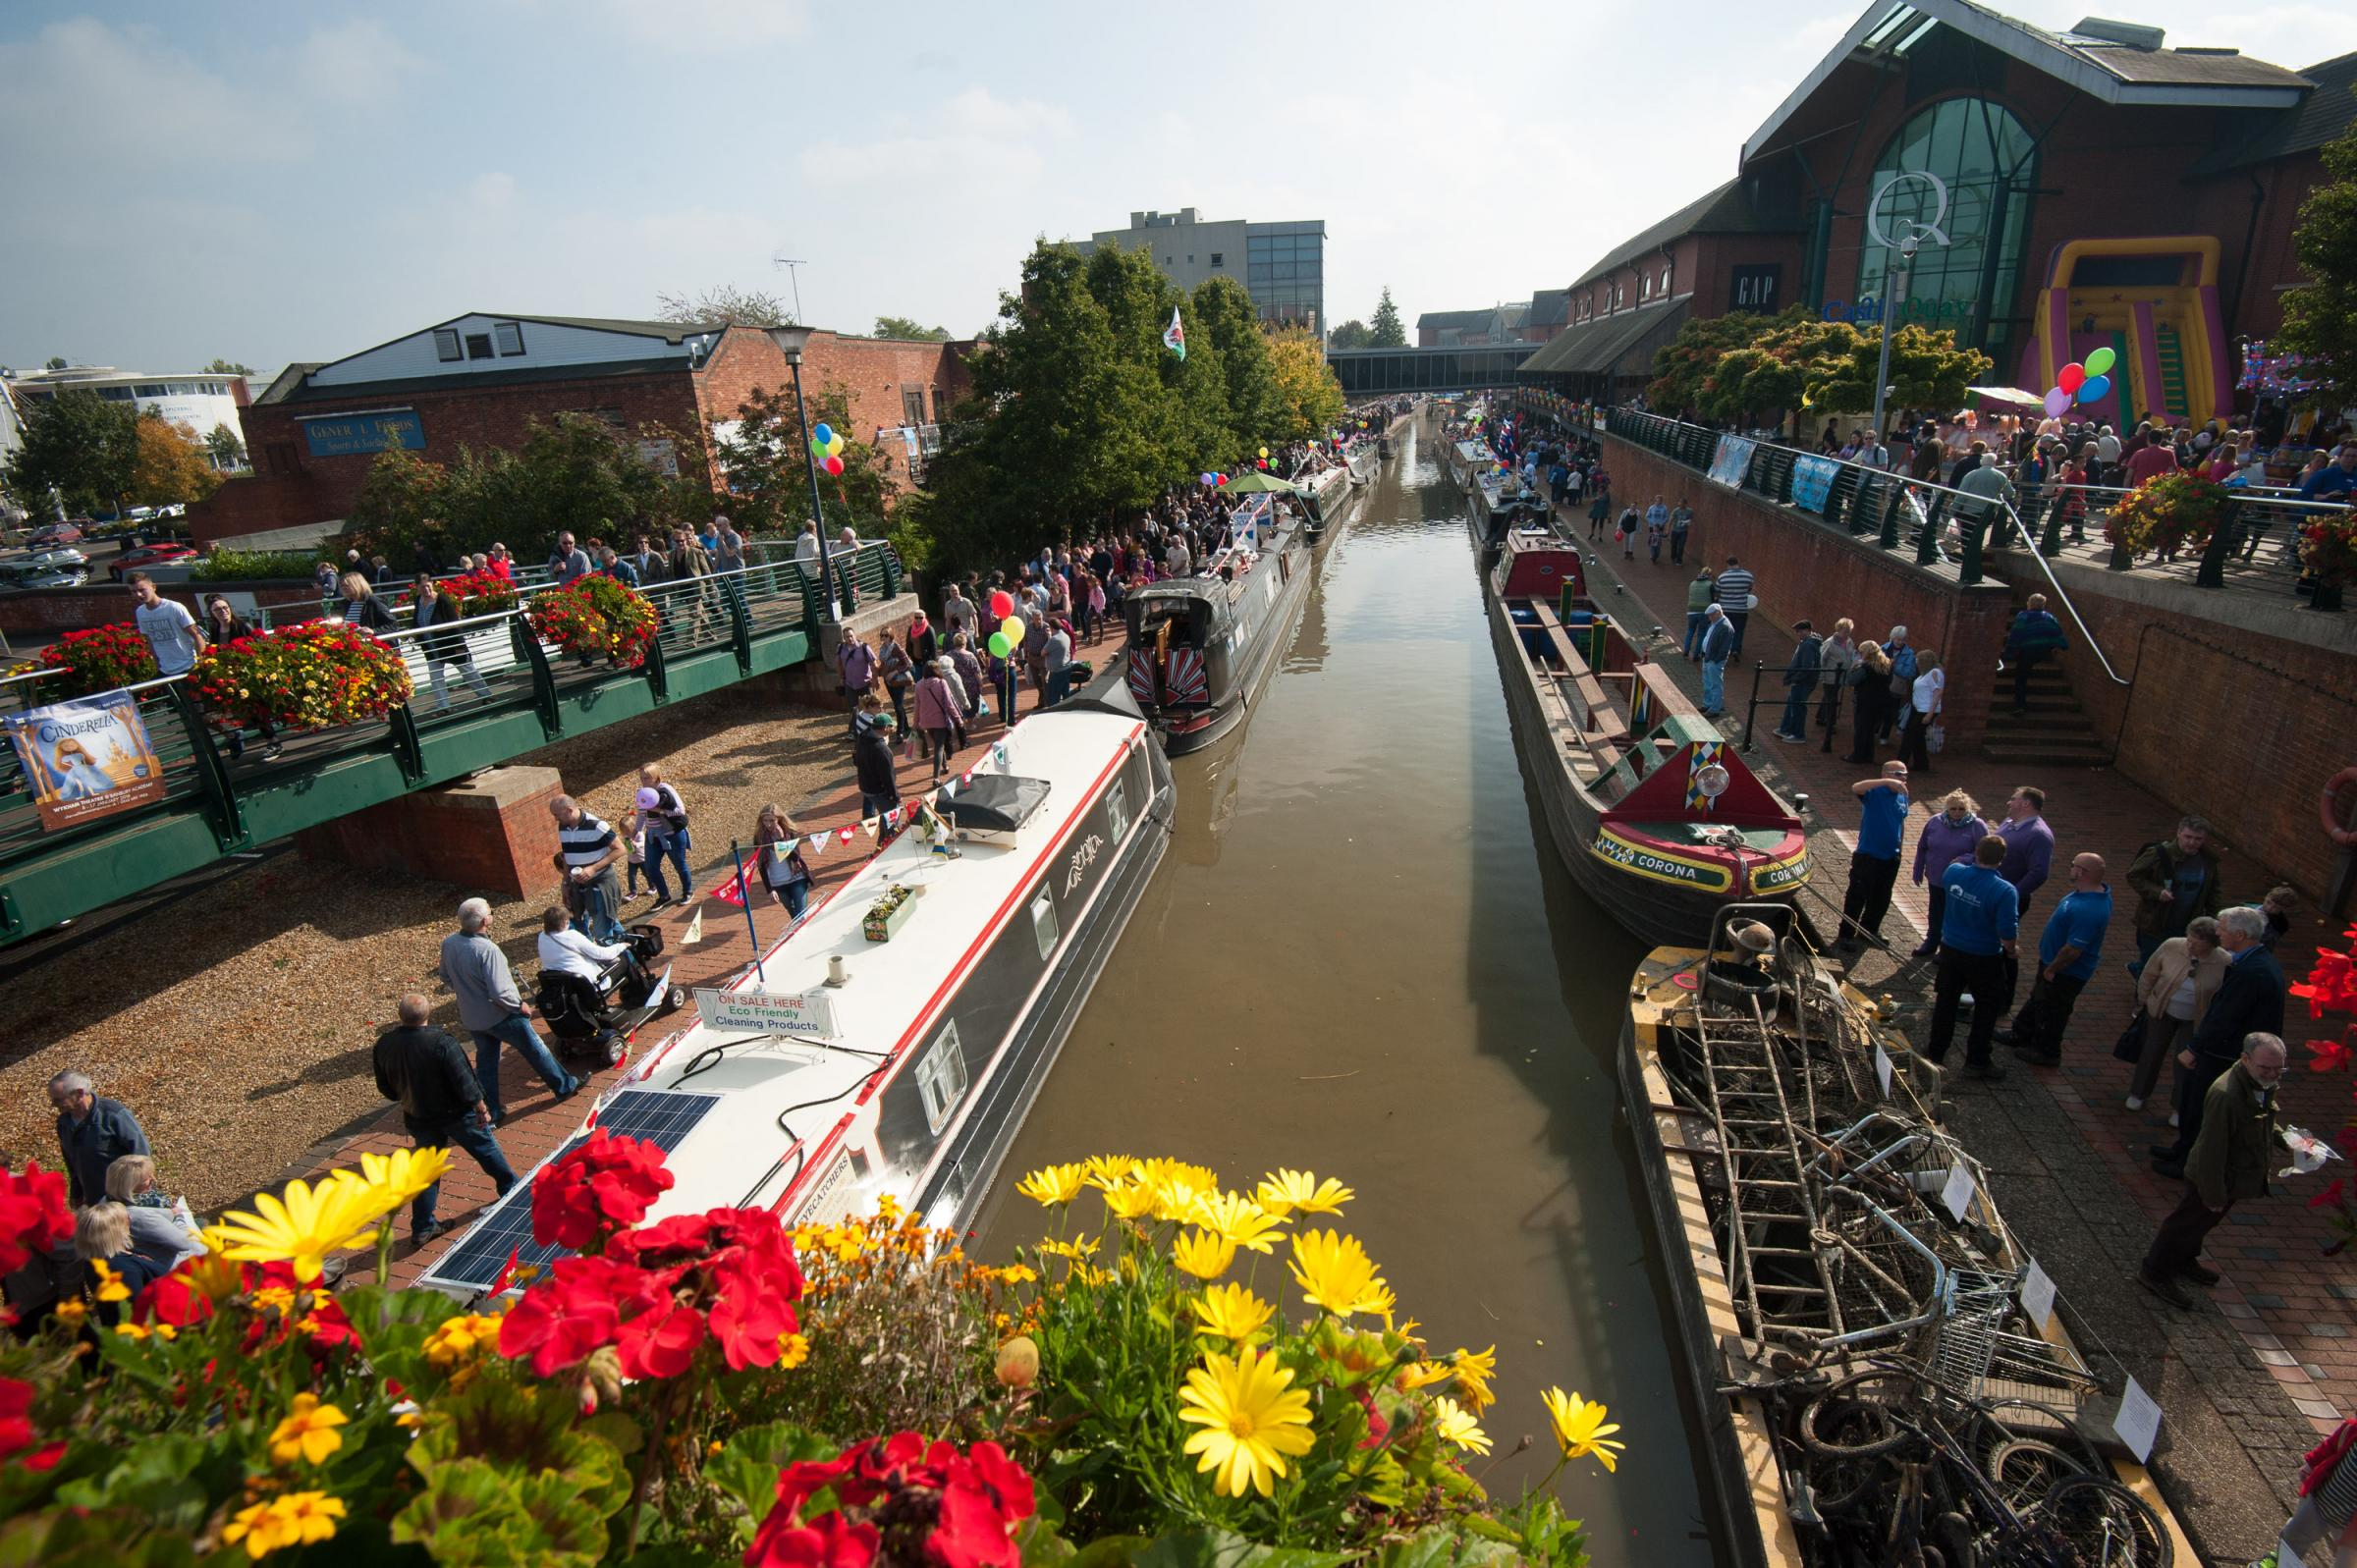 Narrowboats line the Oxford Canal during Banbury's annual Canal Day celebrations